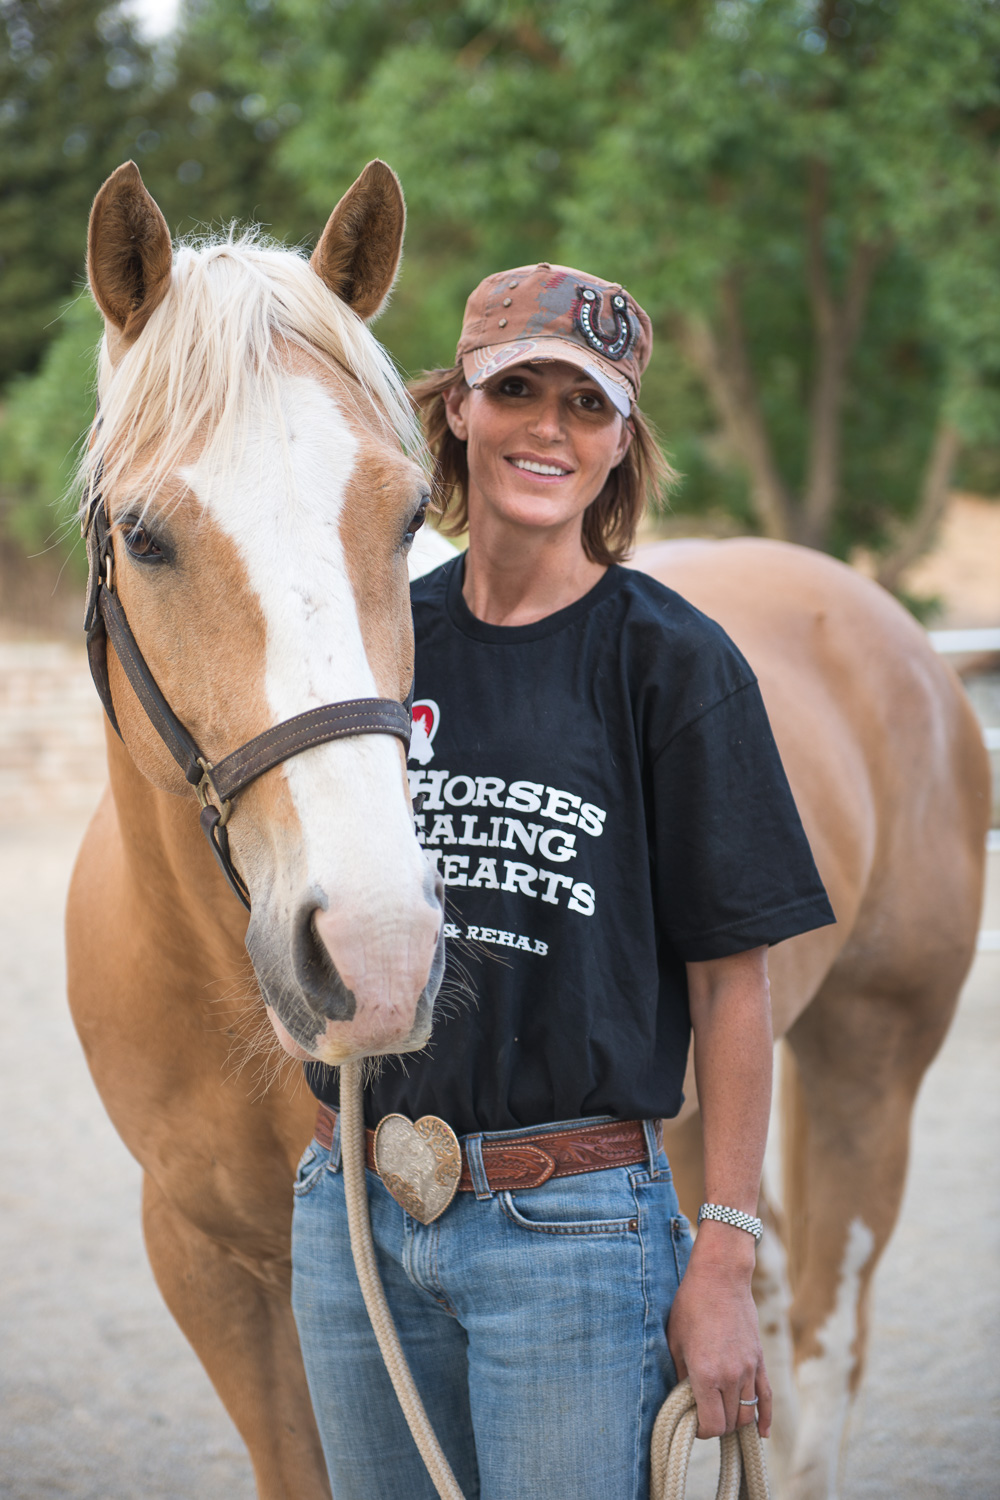 Melissa at Horses Healing Hearts // Ashley Petersen Photography